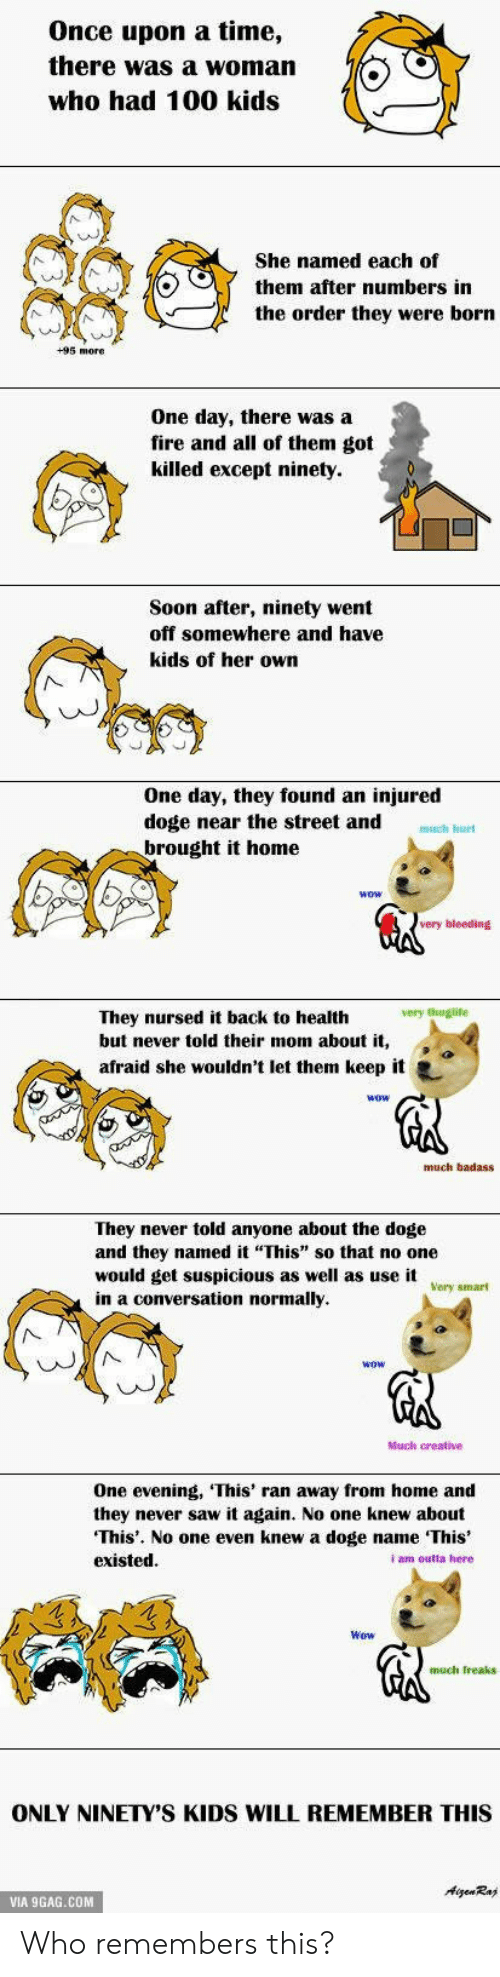 """Never Saw It: Once upon a time,  there was a woman  who had 100 kids  She named each of  them after numbers in  the order they were born  +95 more  One day, there was a  fire and all of them got  killed except ninety.  Soon after, ninety went  off somewhere and have  kids of her own  One day, they found an injured  doge near the street and  brought it home  uch hurt  wow  very bleeding  very thugite  They nursed it back to health  but never told their mom about it,  afraid she wouldn't let them keep it e  much badass  They never told anyone about the doge  and they named it This"""" so that no one  would get suspicious as well as use it  in a conversation normally  Very smart  AN  Much creative  One evening, 'This' ran away from home and  they never saw it again. No one knew about  This'. No one even knew a doge name This  existed  i am outta here  Wow  much Ireaks  ONLY NINETY'S KIDS WILL REMEMBER THIS  VIA 9GAG.COM Who remembers this?"""